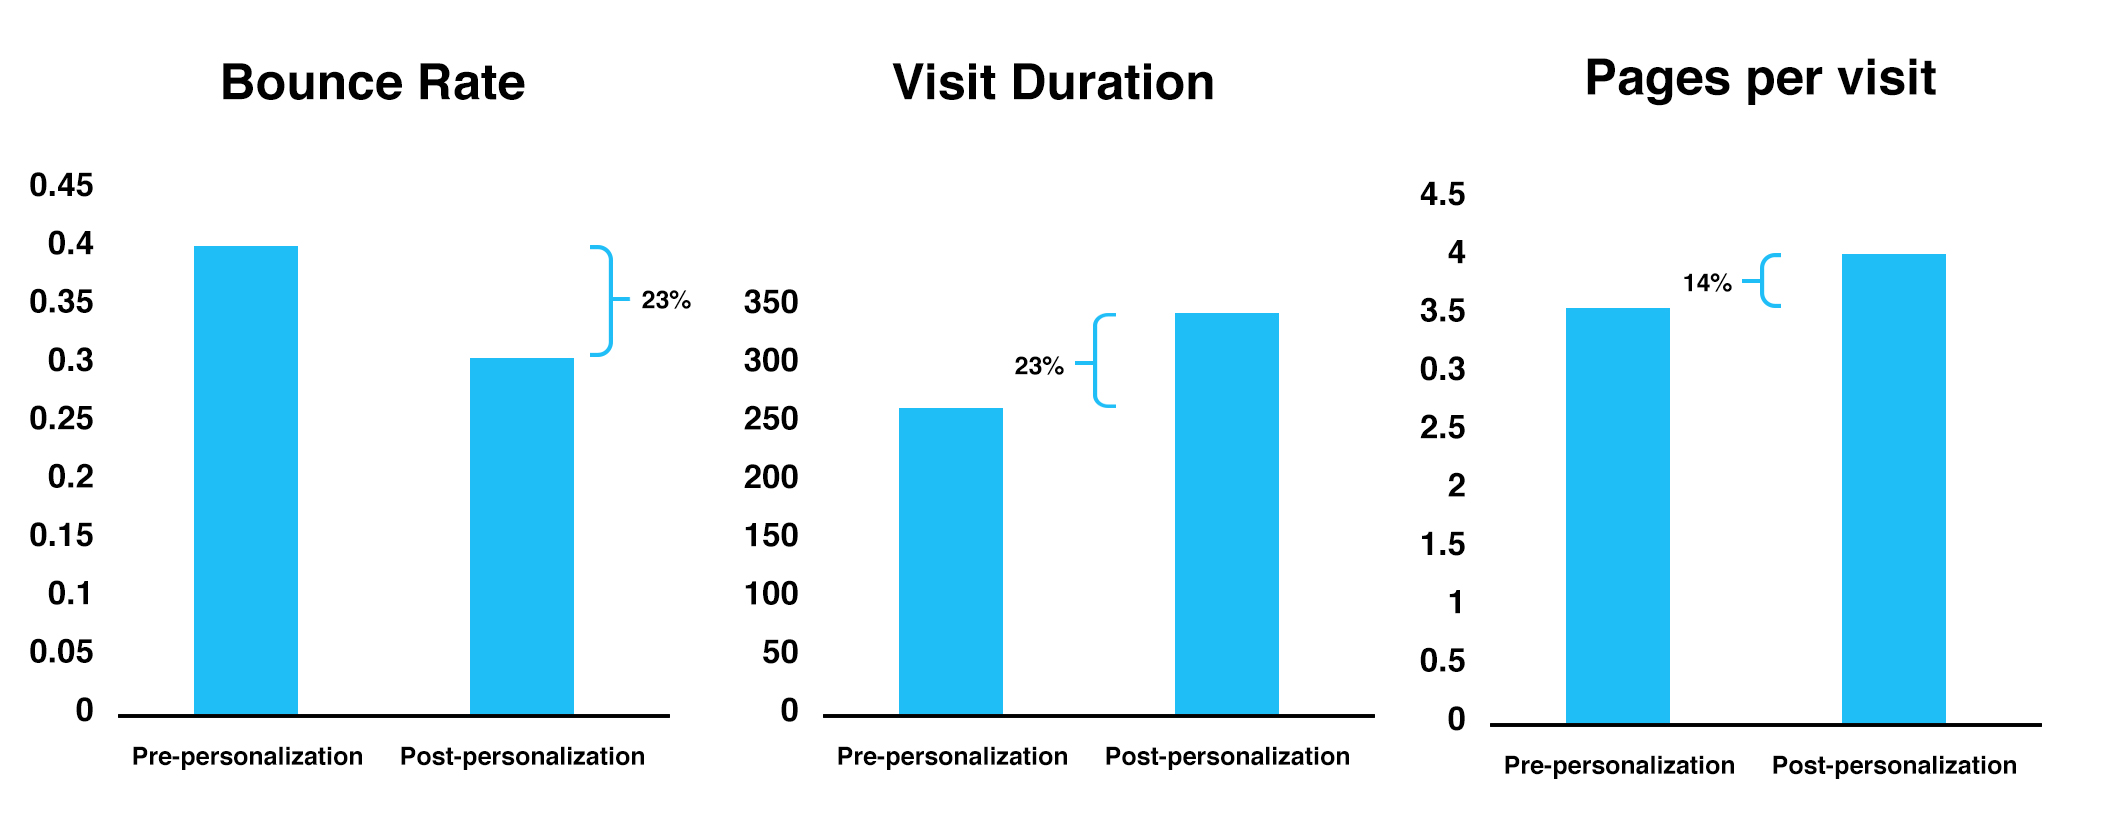 Measuring the impact of personalization